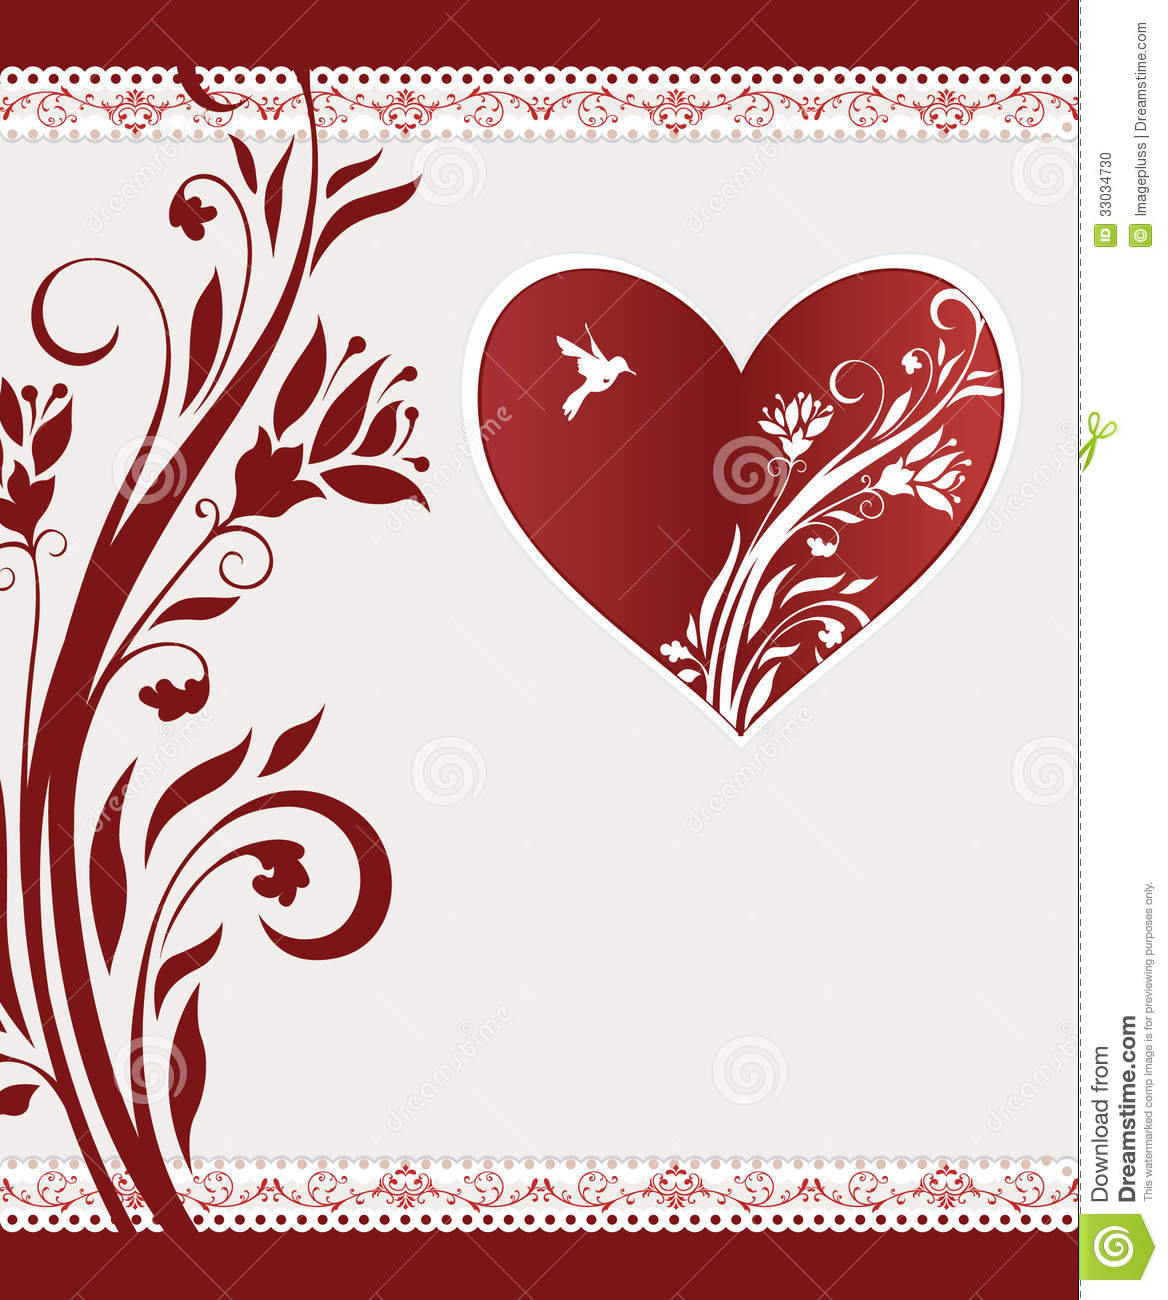 Wedding Floral Card Stock Photo - Image: 33034730